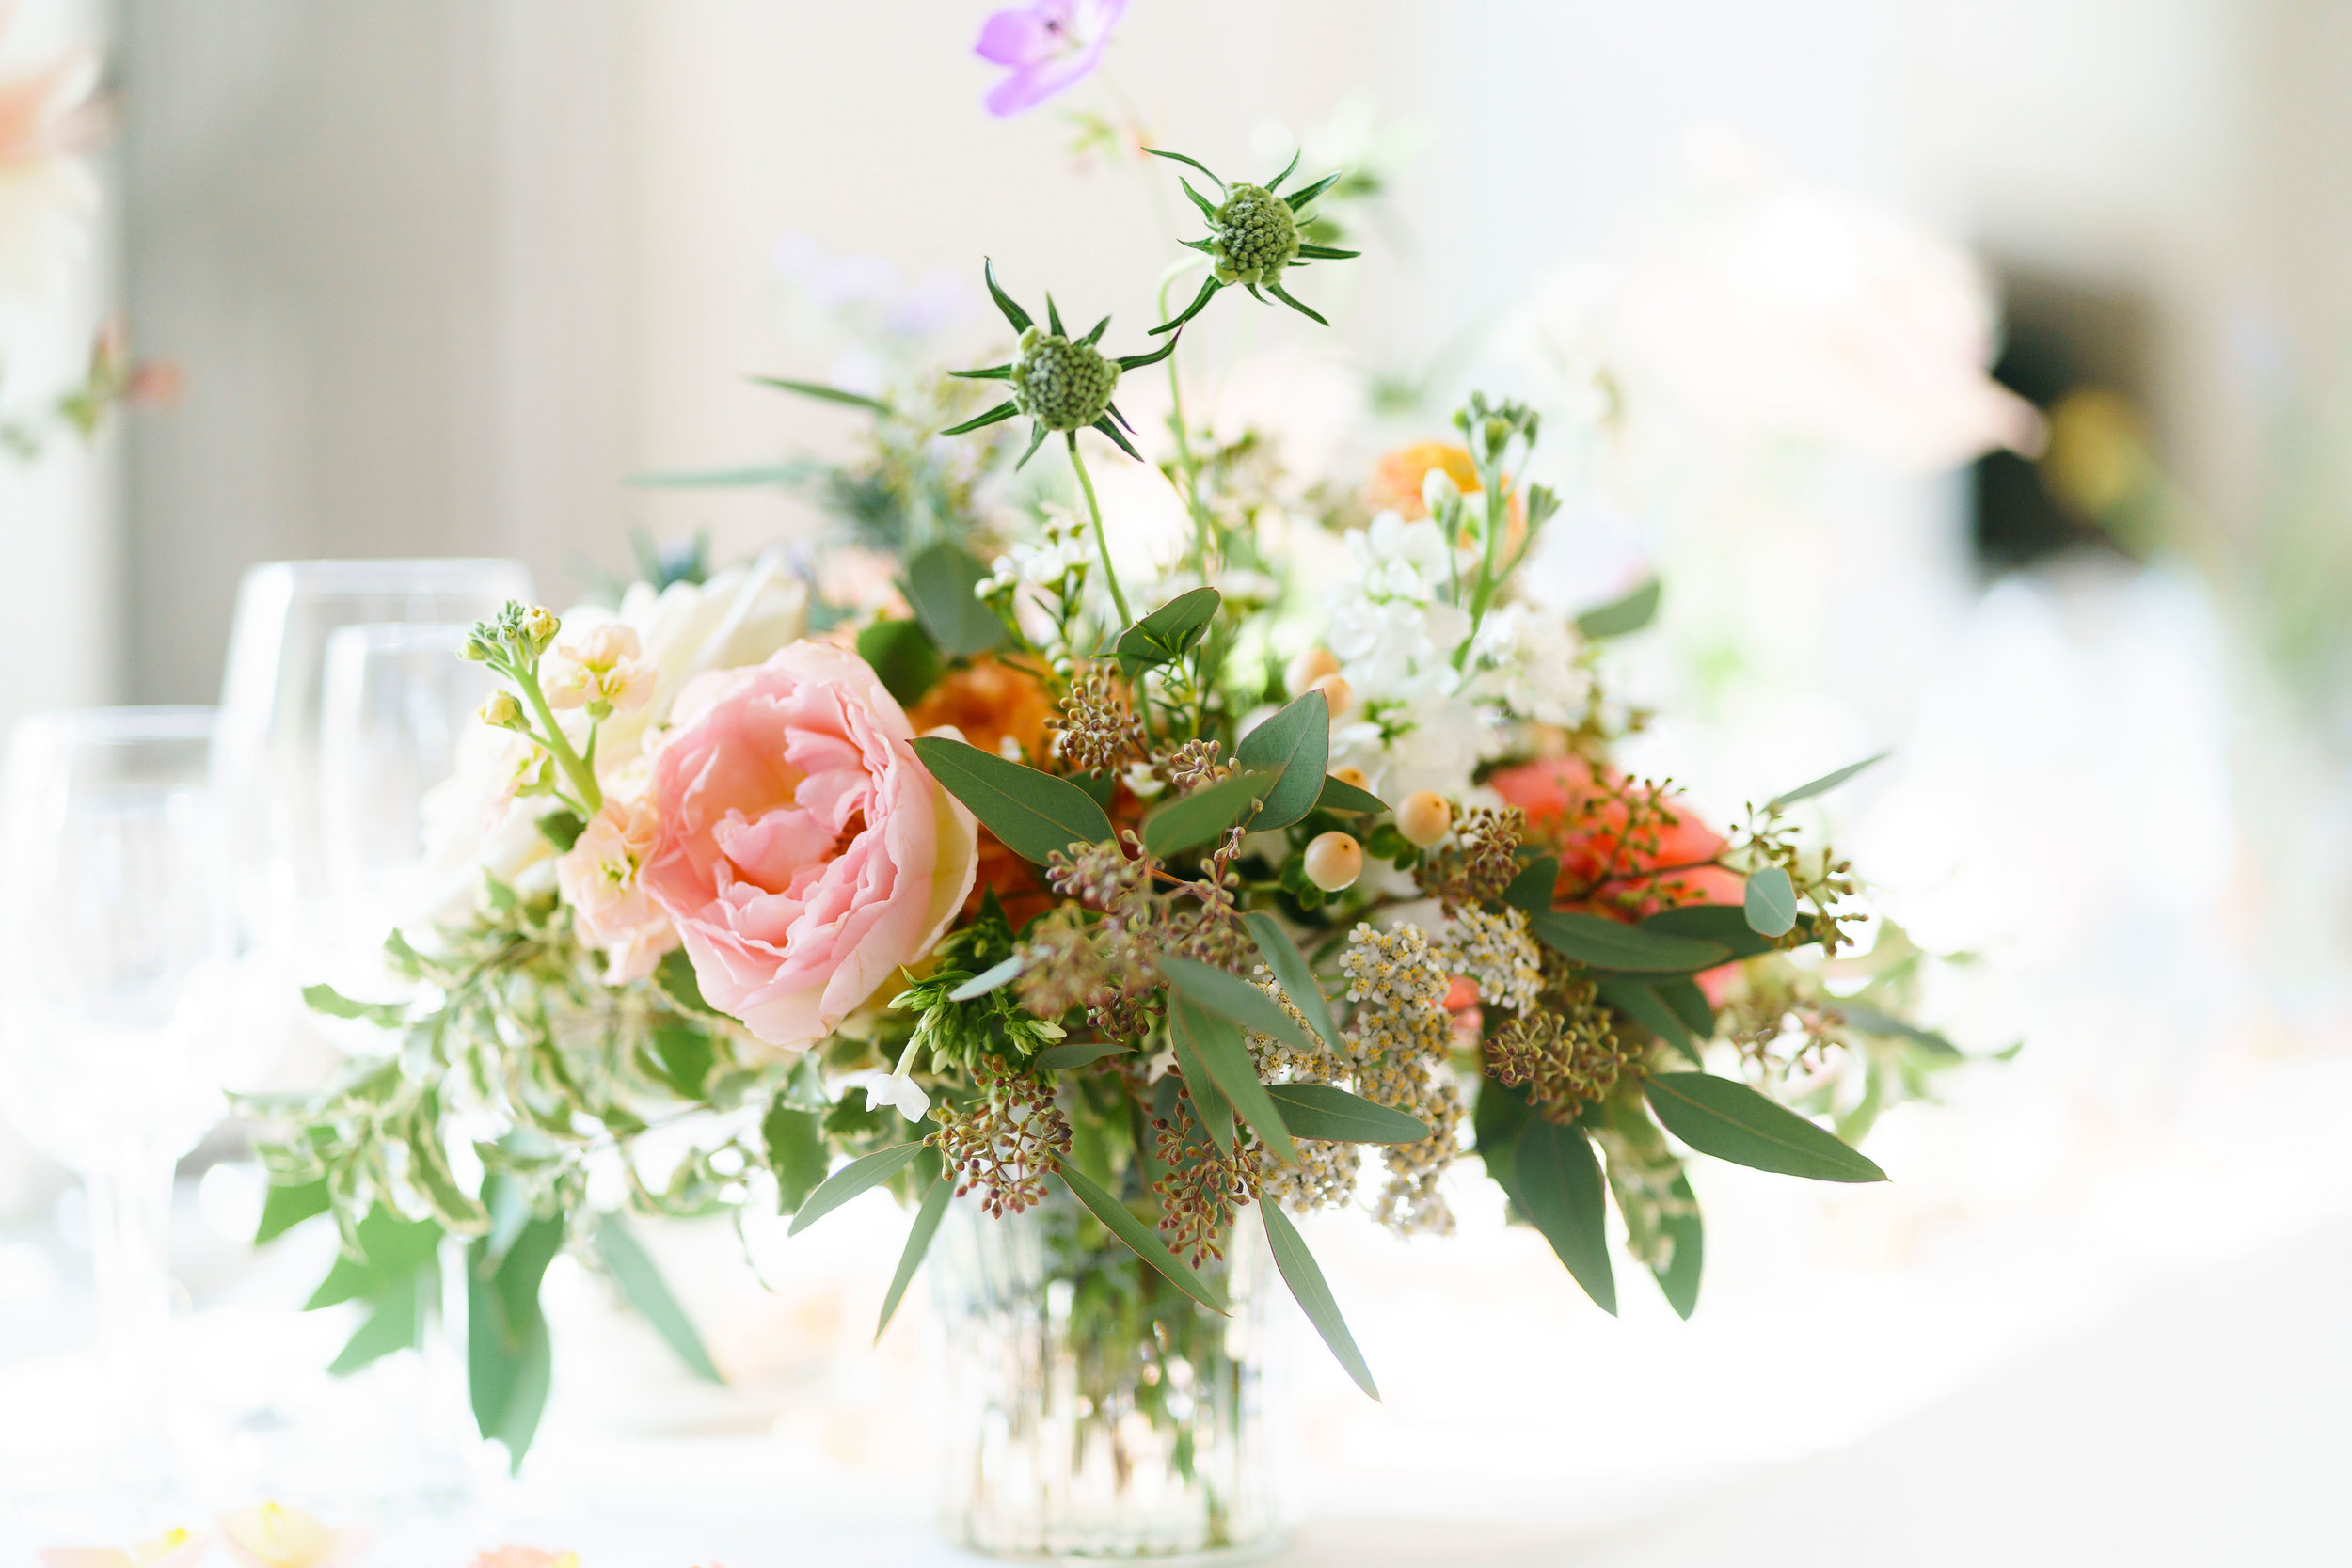 Image - James Davidson Photography | Florals - Moss & Stone Floral Design